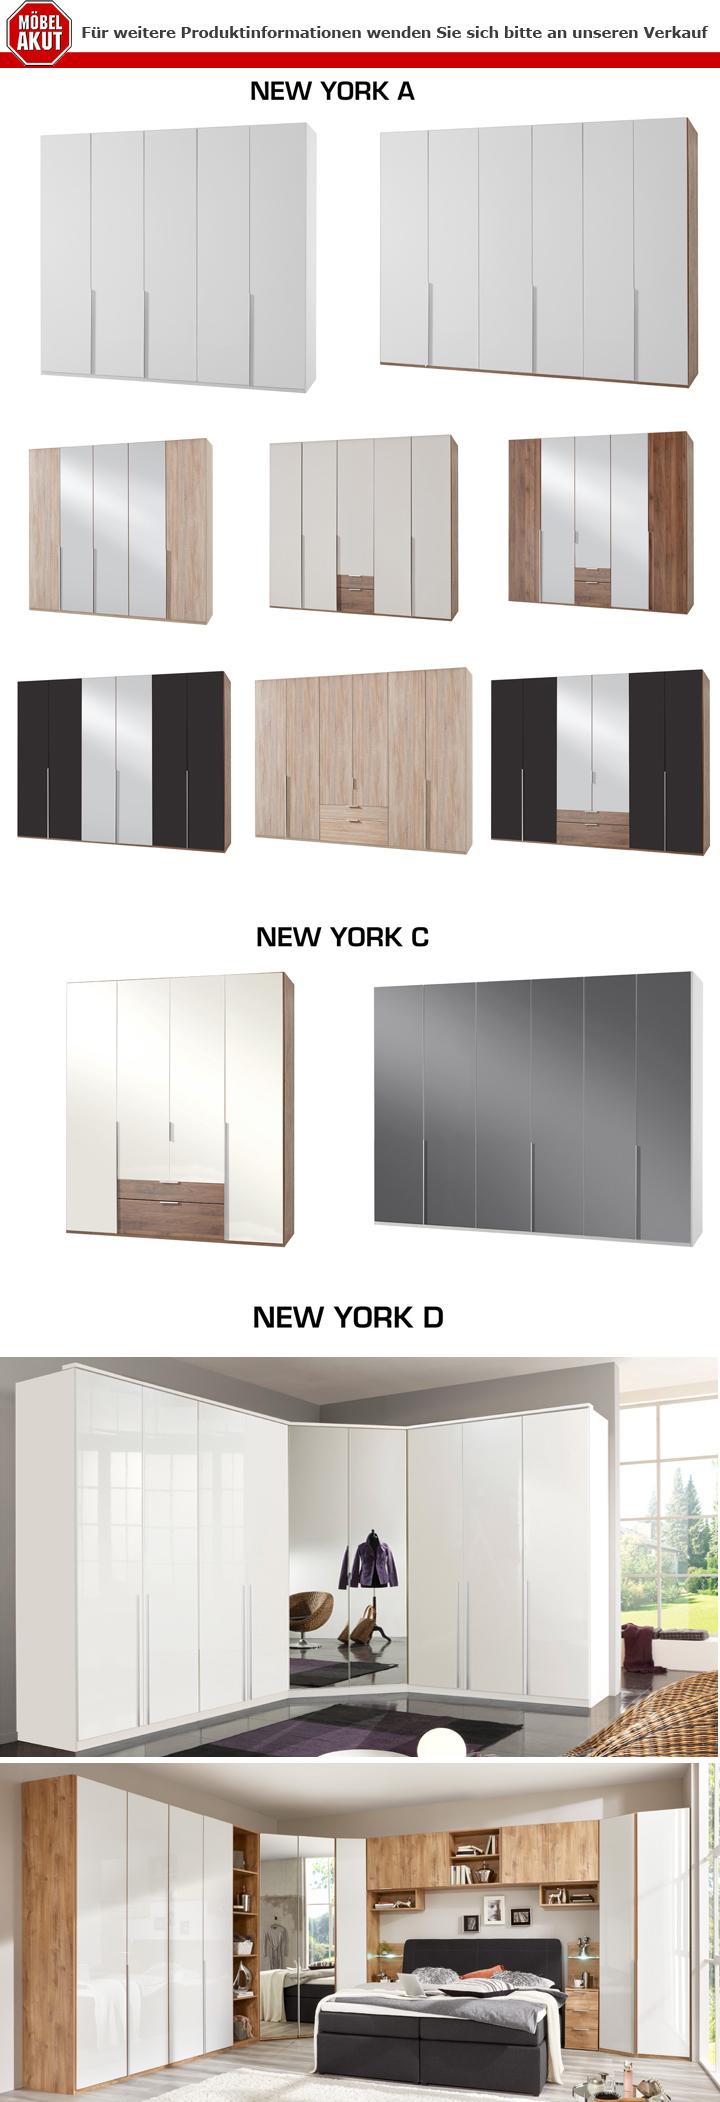 bettbr cke new york a bett berbau berbauschrank kleiderschrank in eiche hell ebay. Black Bedroom Furniture Sets. Home Design Ideas